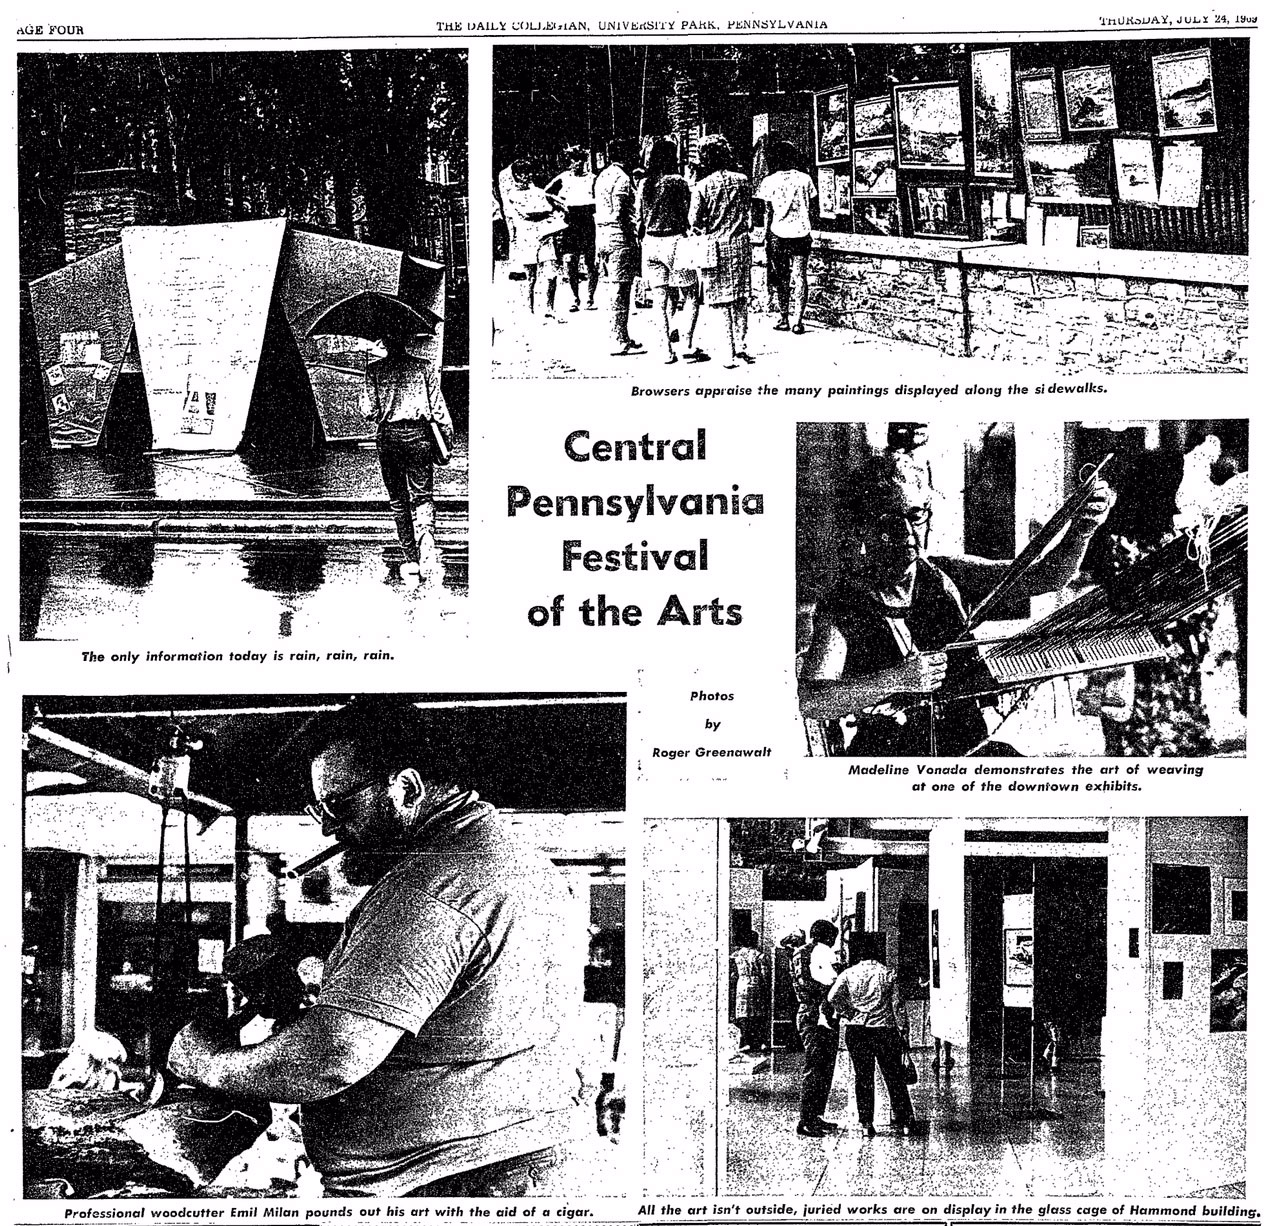 A shot of Emil making a bowl at the Art Festival from the  Daily Collegian  July 24, 1969 (Photos by Roger Greenawalt.  Used by permission of the  Daily Collegian ).